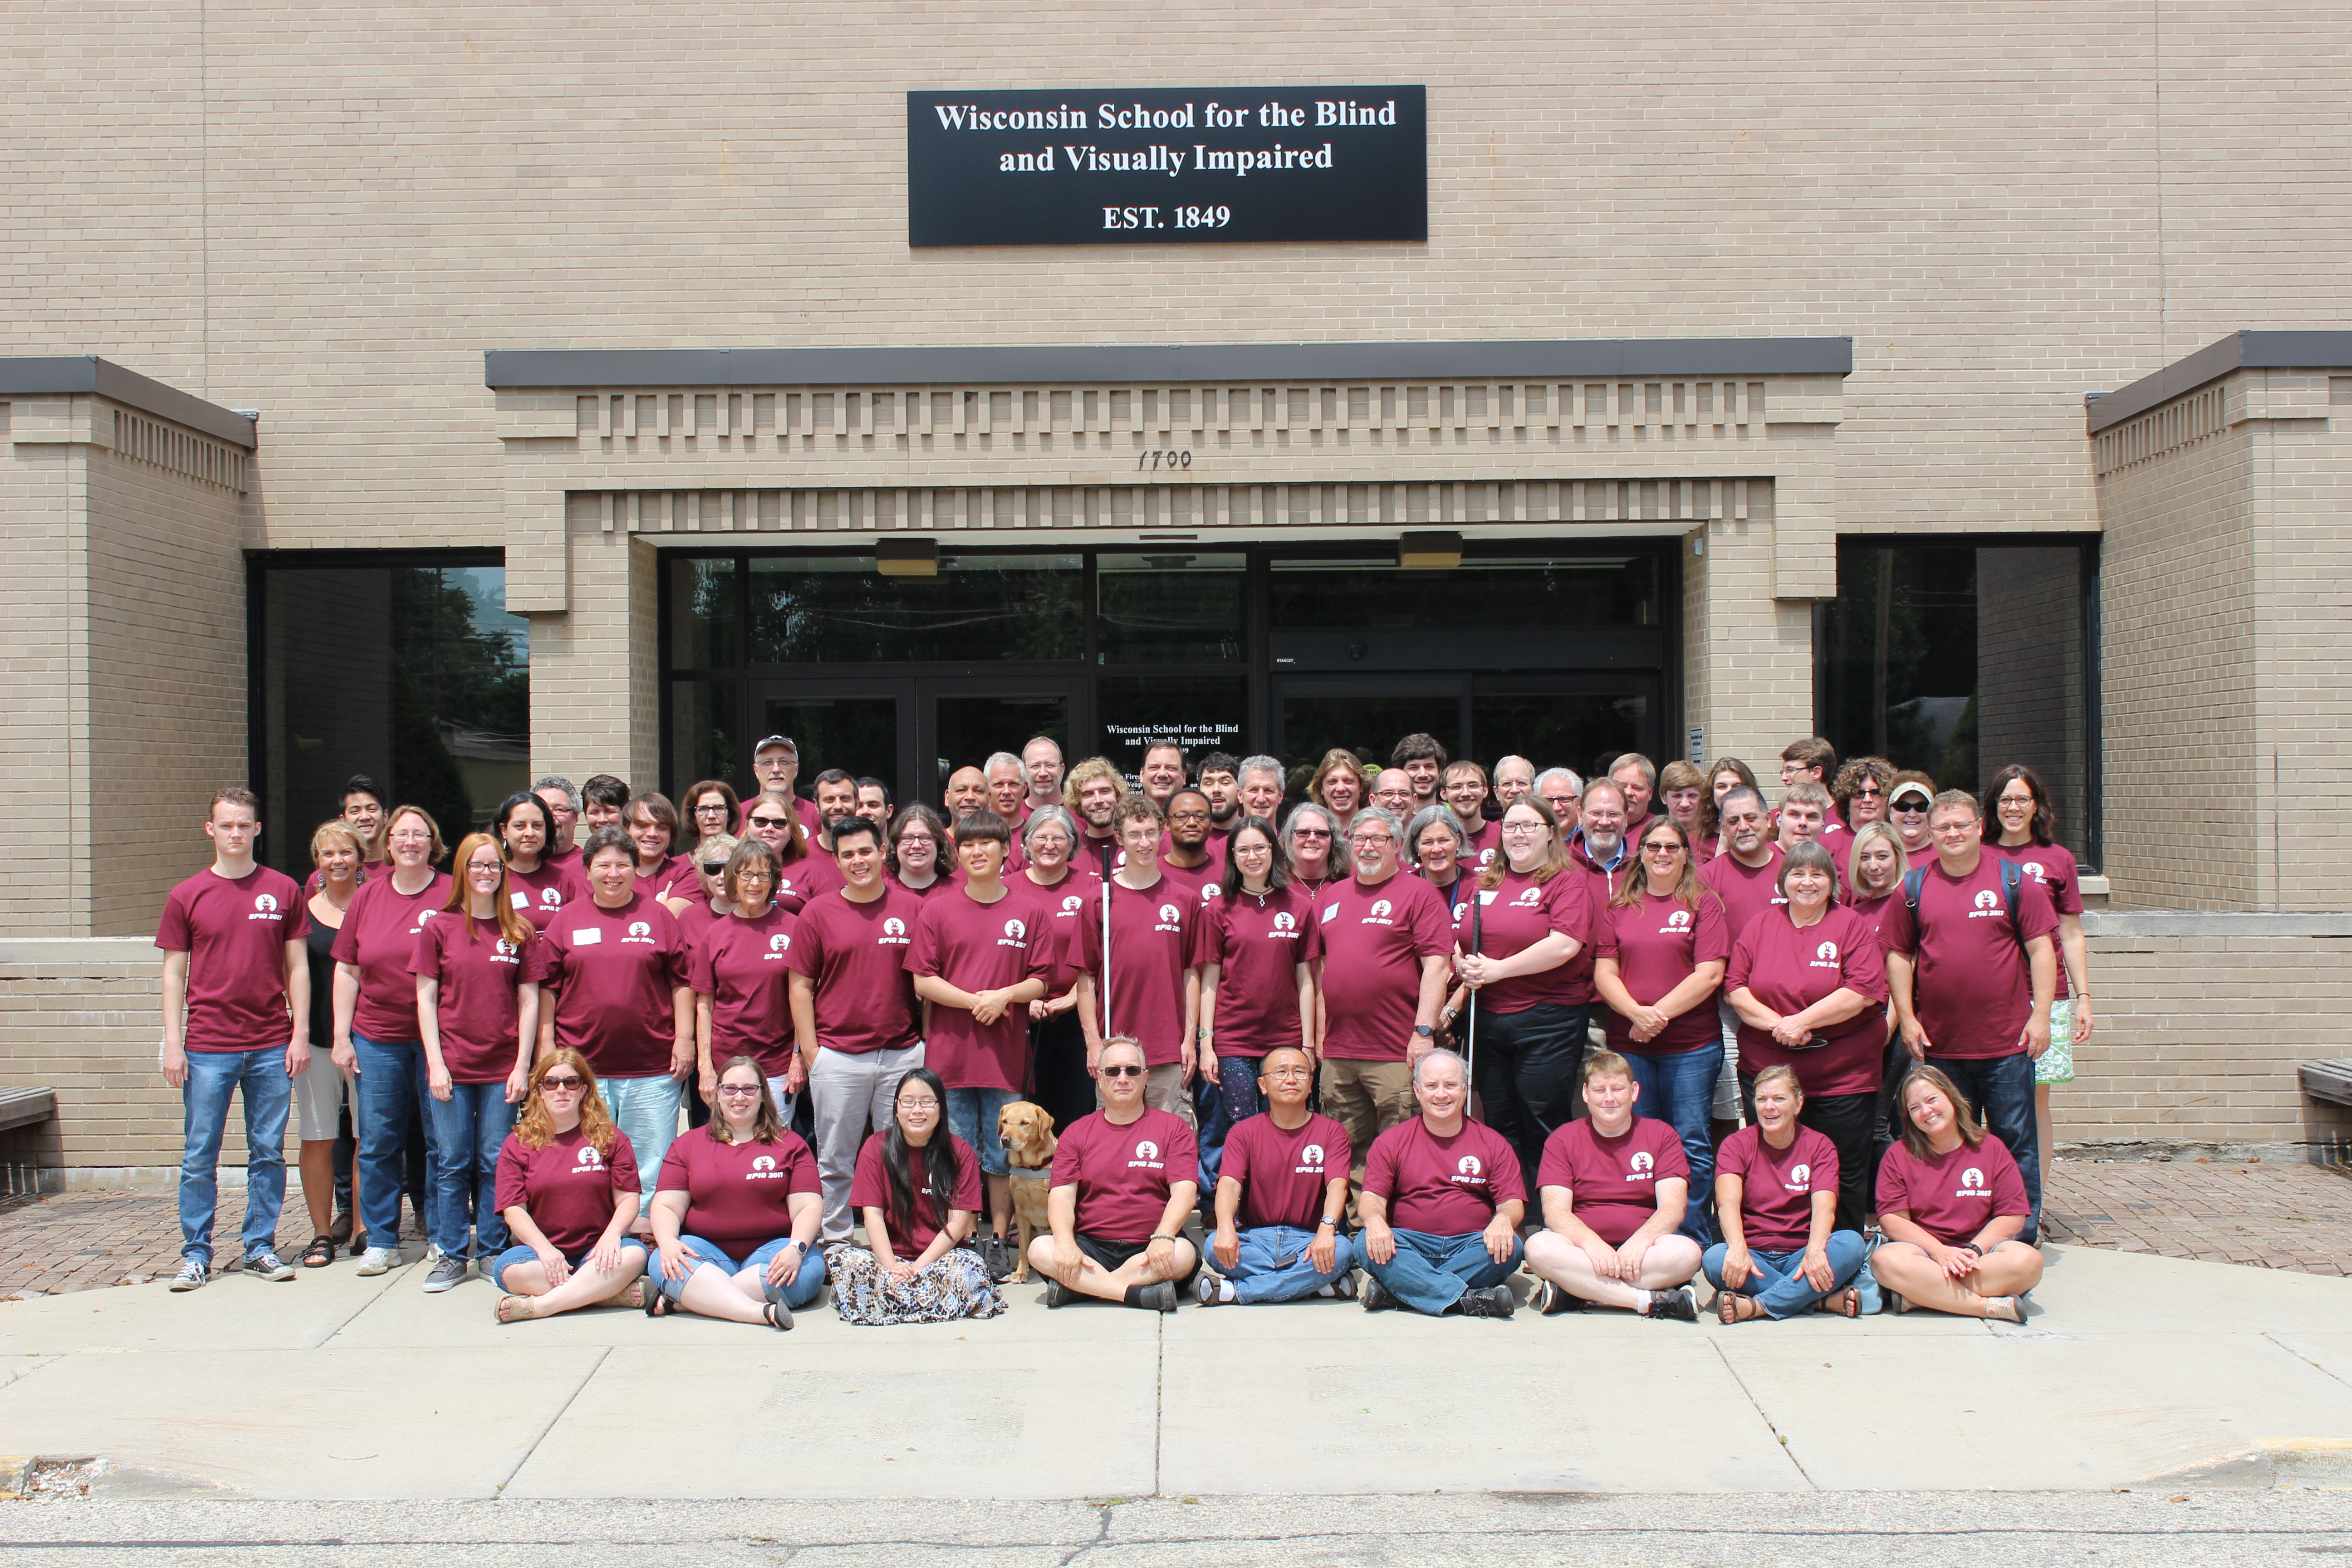 Approximately 75 Participants of the EPIQ conference standing on the steps of the Wisconsin School for the Blind